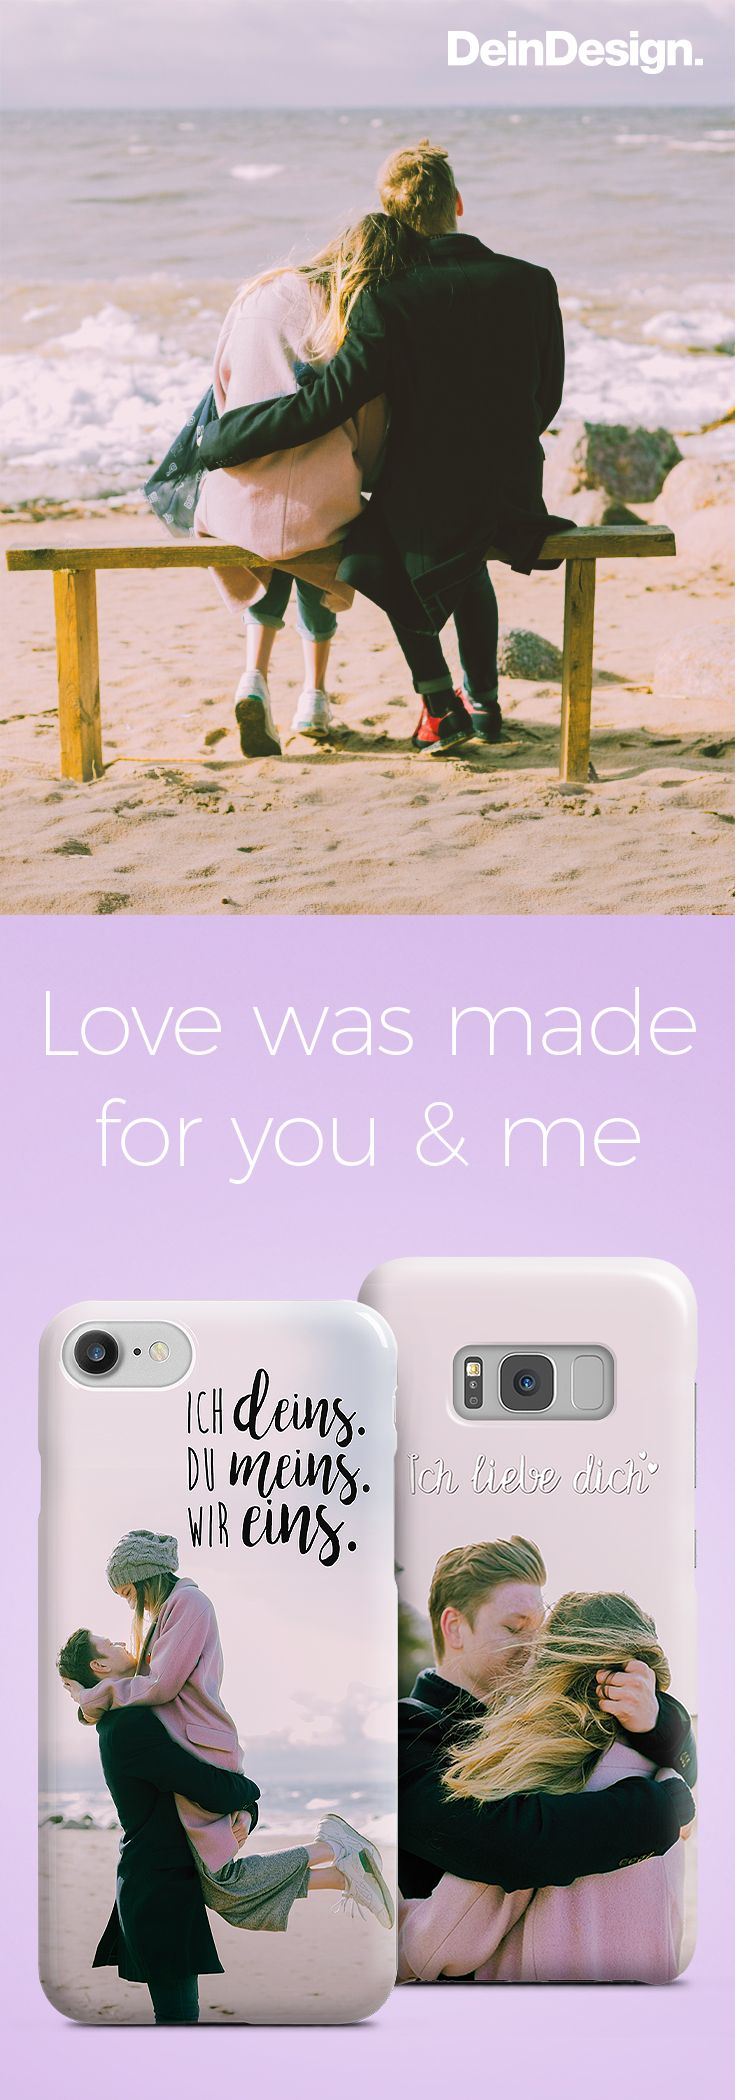 Valentine's Day // homemade and personal gift idea // DIY // mobile phone case // personalize // gift for you // gift for him // gift